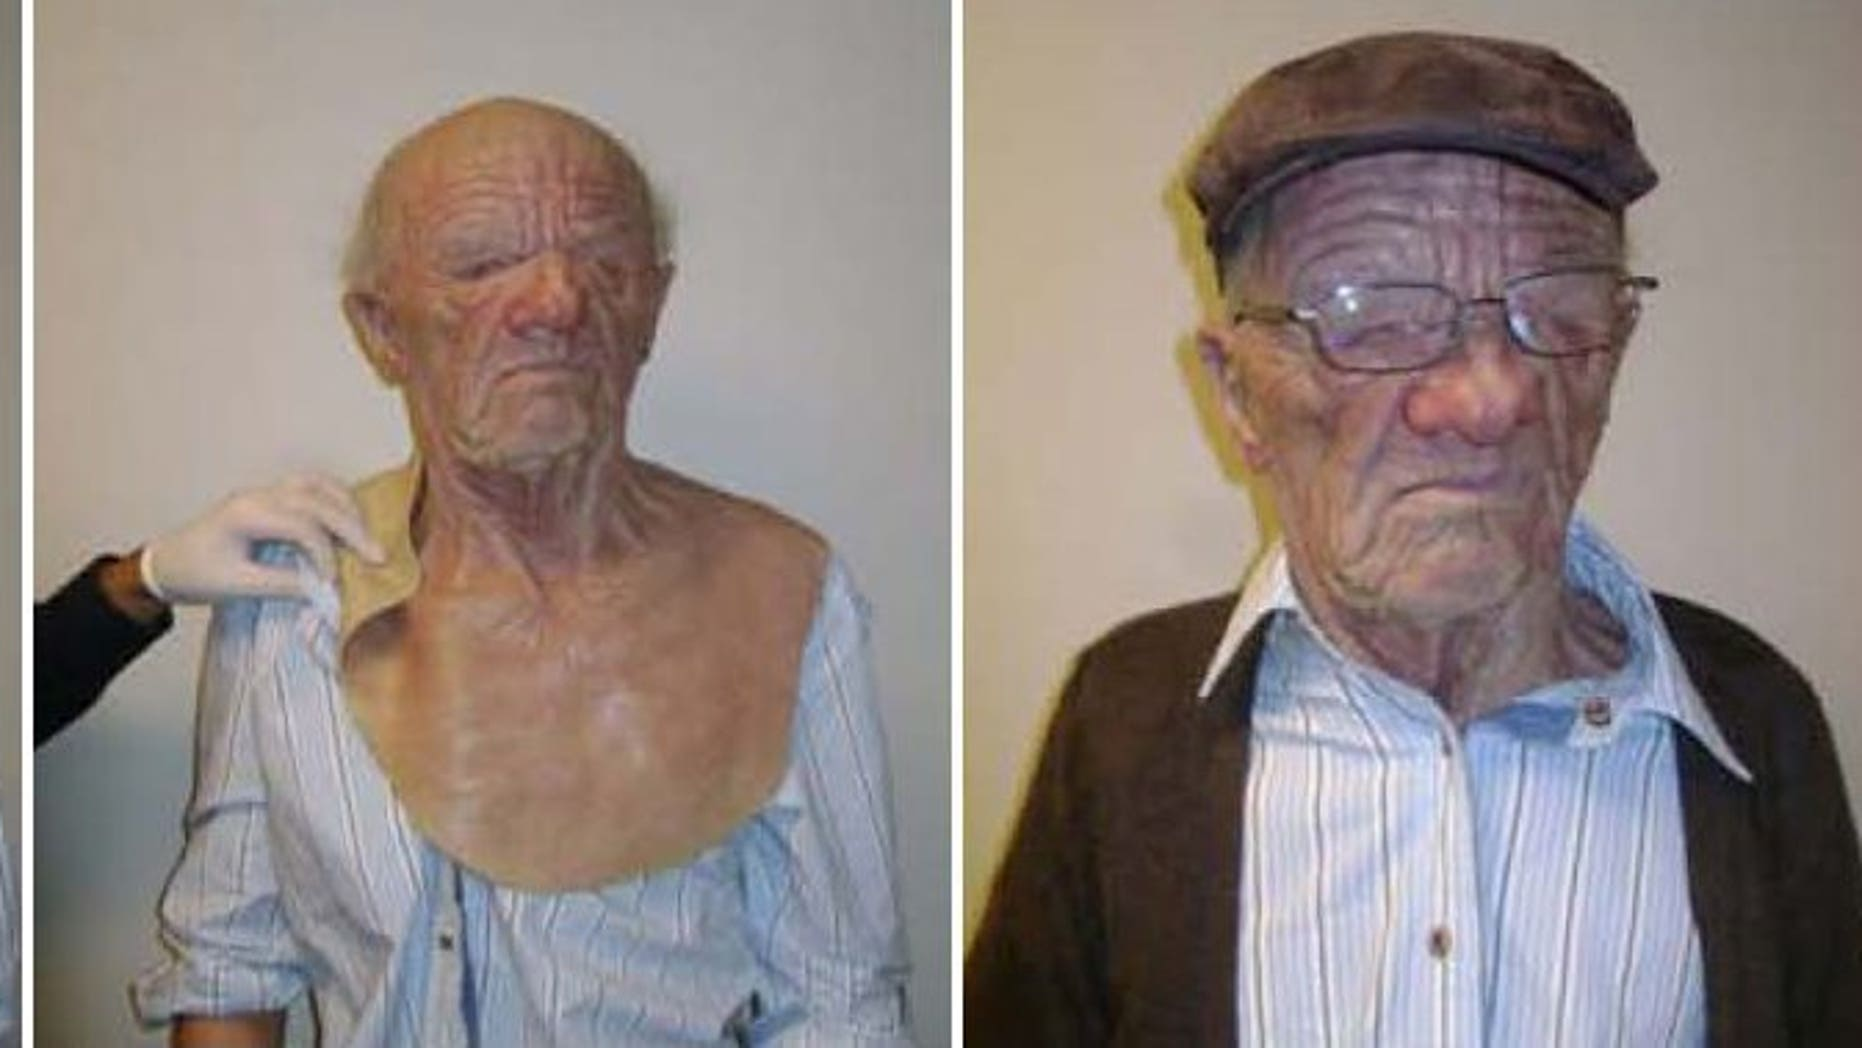 This undated combination of photos released by the Canada Border Services Agency shows a young man who boarded an Air Canada flight in Hong Kong while elaborately disguised as an elderly male. Hong Kong authorities have arrested eight people suspected of helping smuggle the young Chinese passenger onto the flight to Canada.